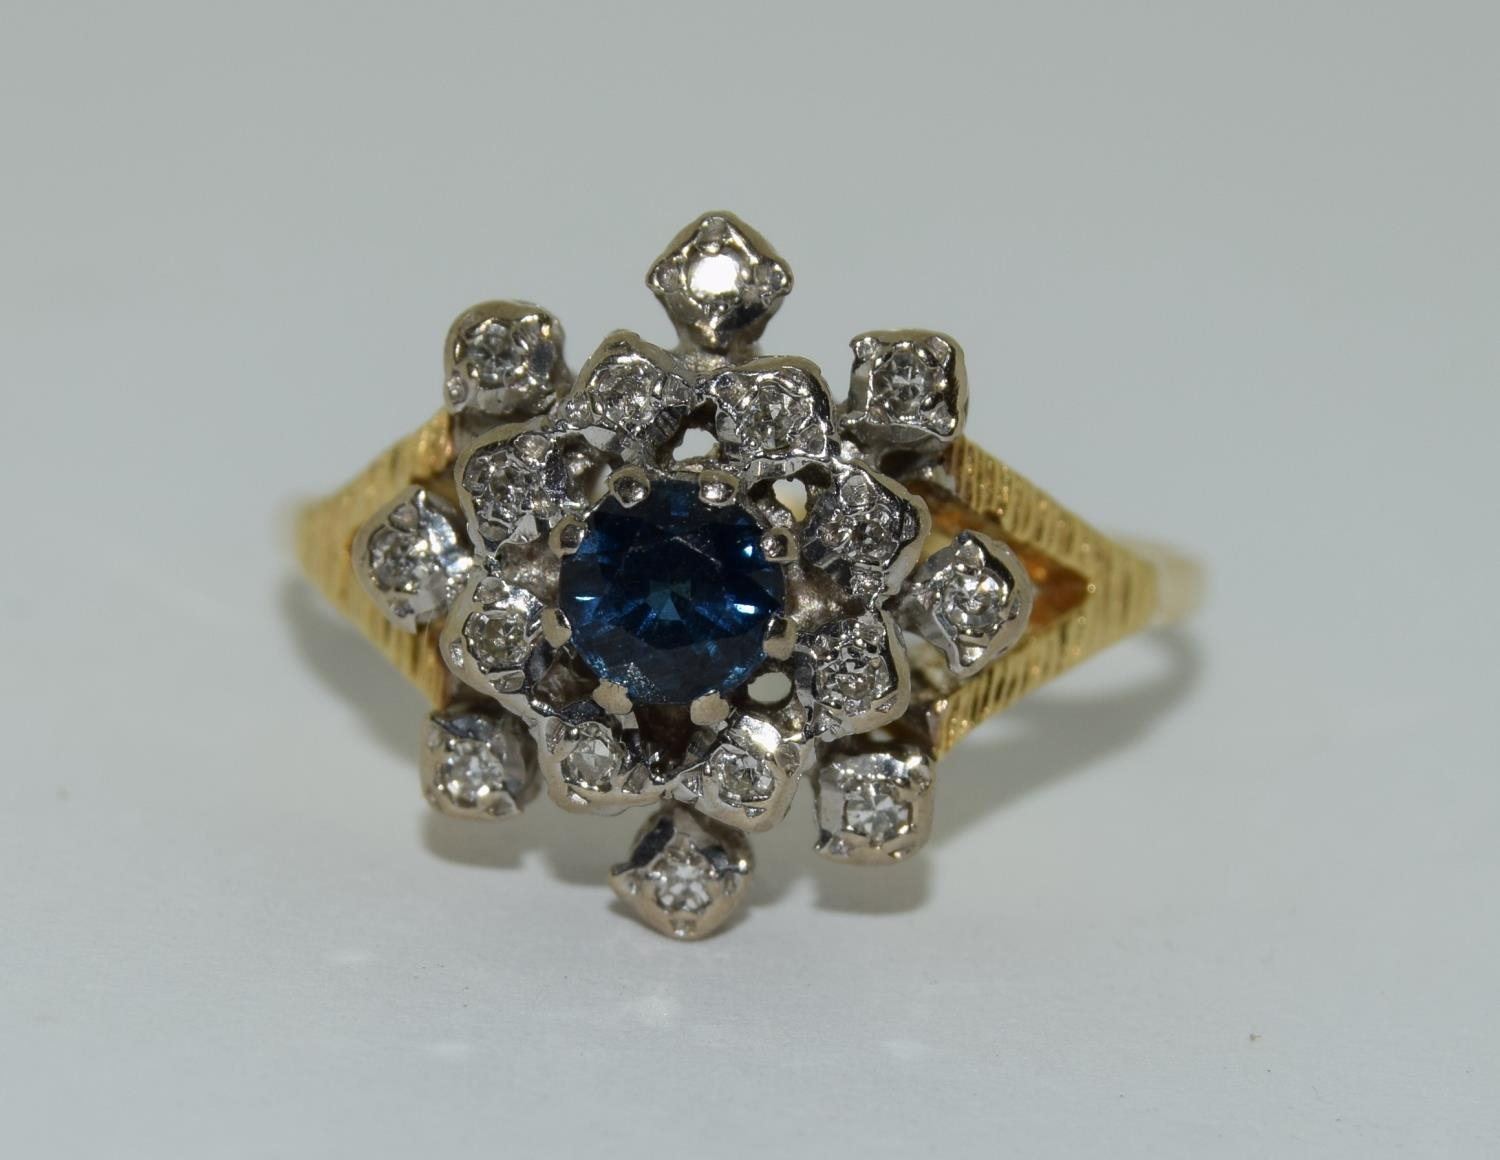 18ct gold diamond and sapphire ring - approx 0.80 dia. Size O. - Image 6 of 6